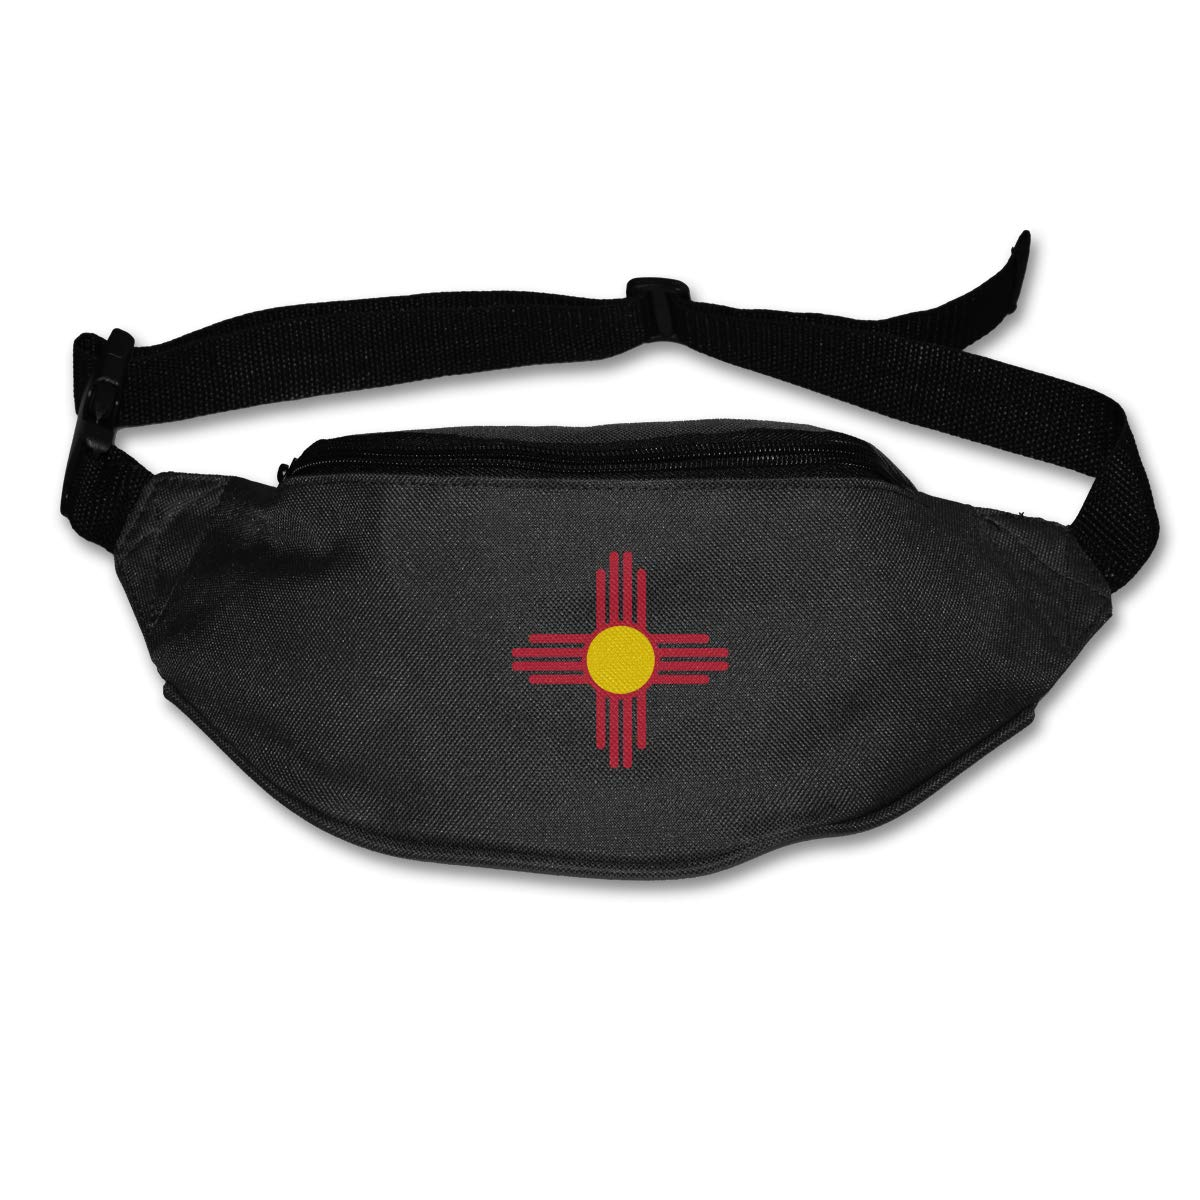 New Mexico Sun Zia Sport Waist Bag Fanny Pack Adjustable For Run